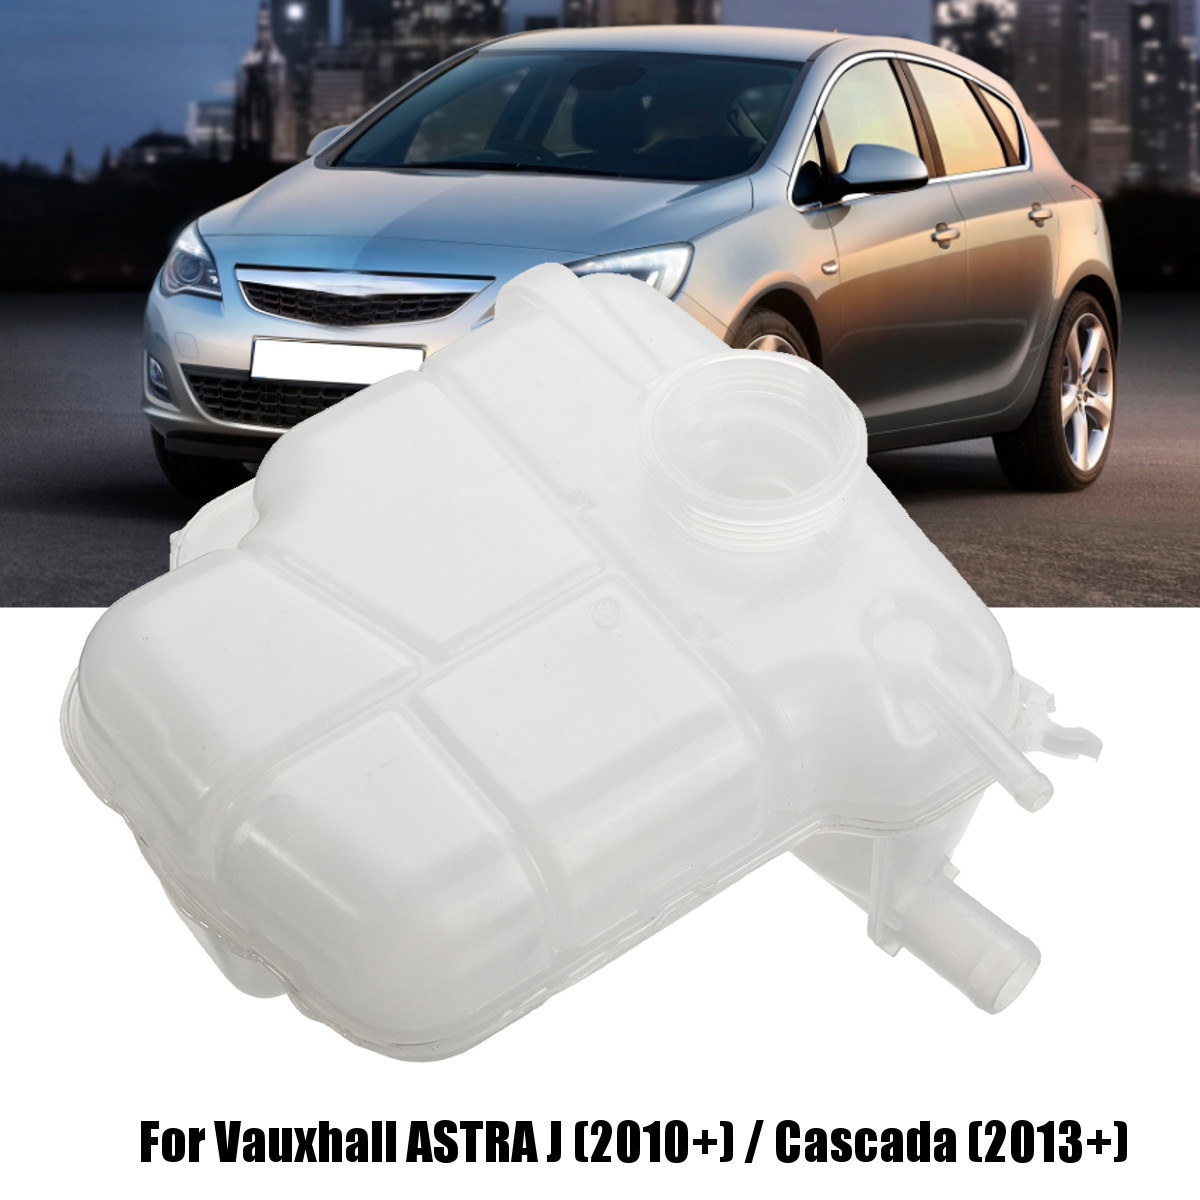 Car Expansion Engine Radiator Coolant Header Tank Without Cap for Vauxhall ASTRA J 2010-ON 13393368 13256823Car Expansion Engine Radiator Coolant Header Tank Without Cap for Vauxhall ASTRA J 2010-ON 13393368 13256823